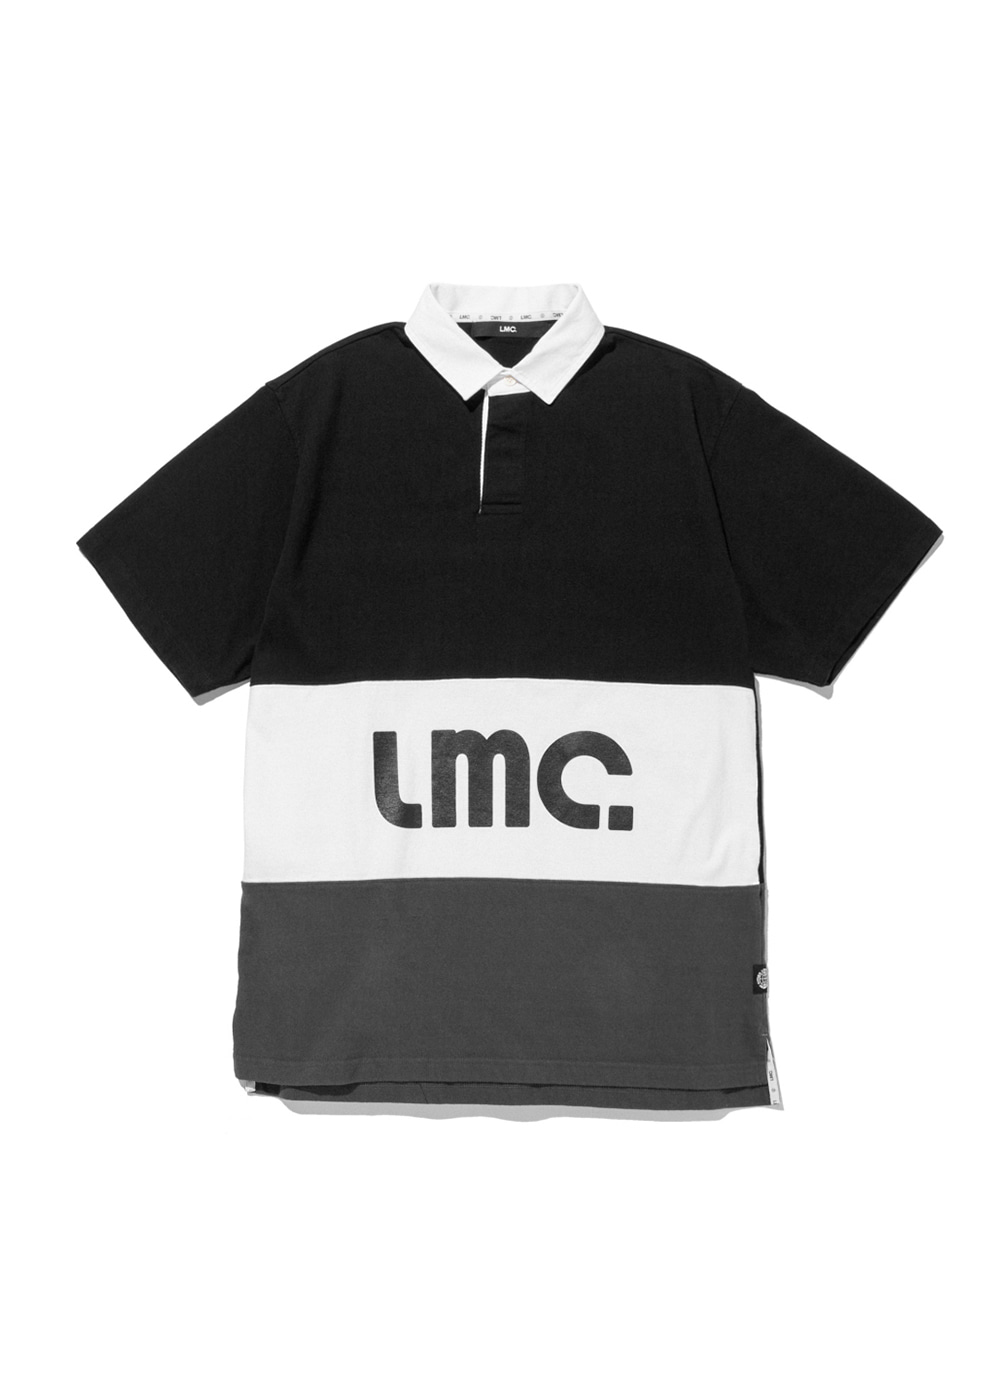 LMC SHORT SLV RUGBY SHIRT black